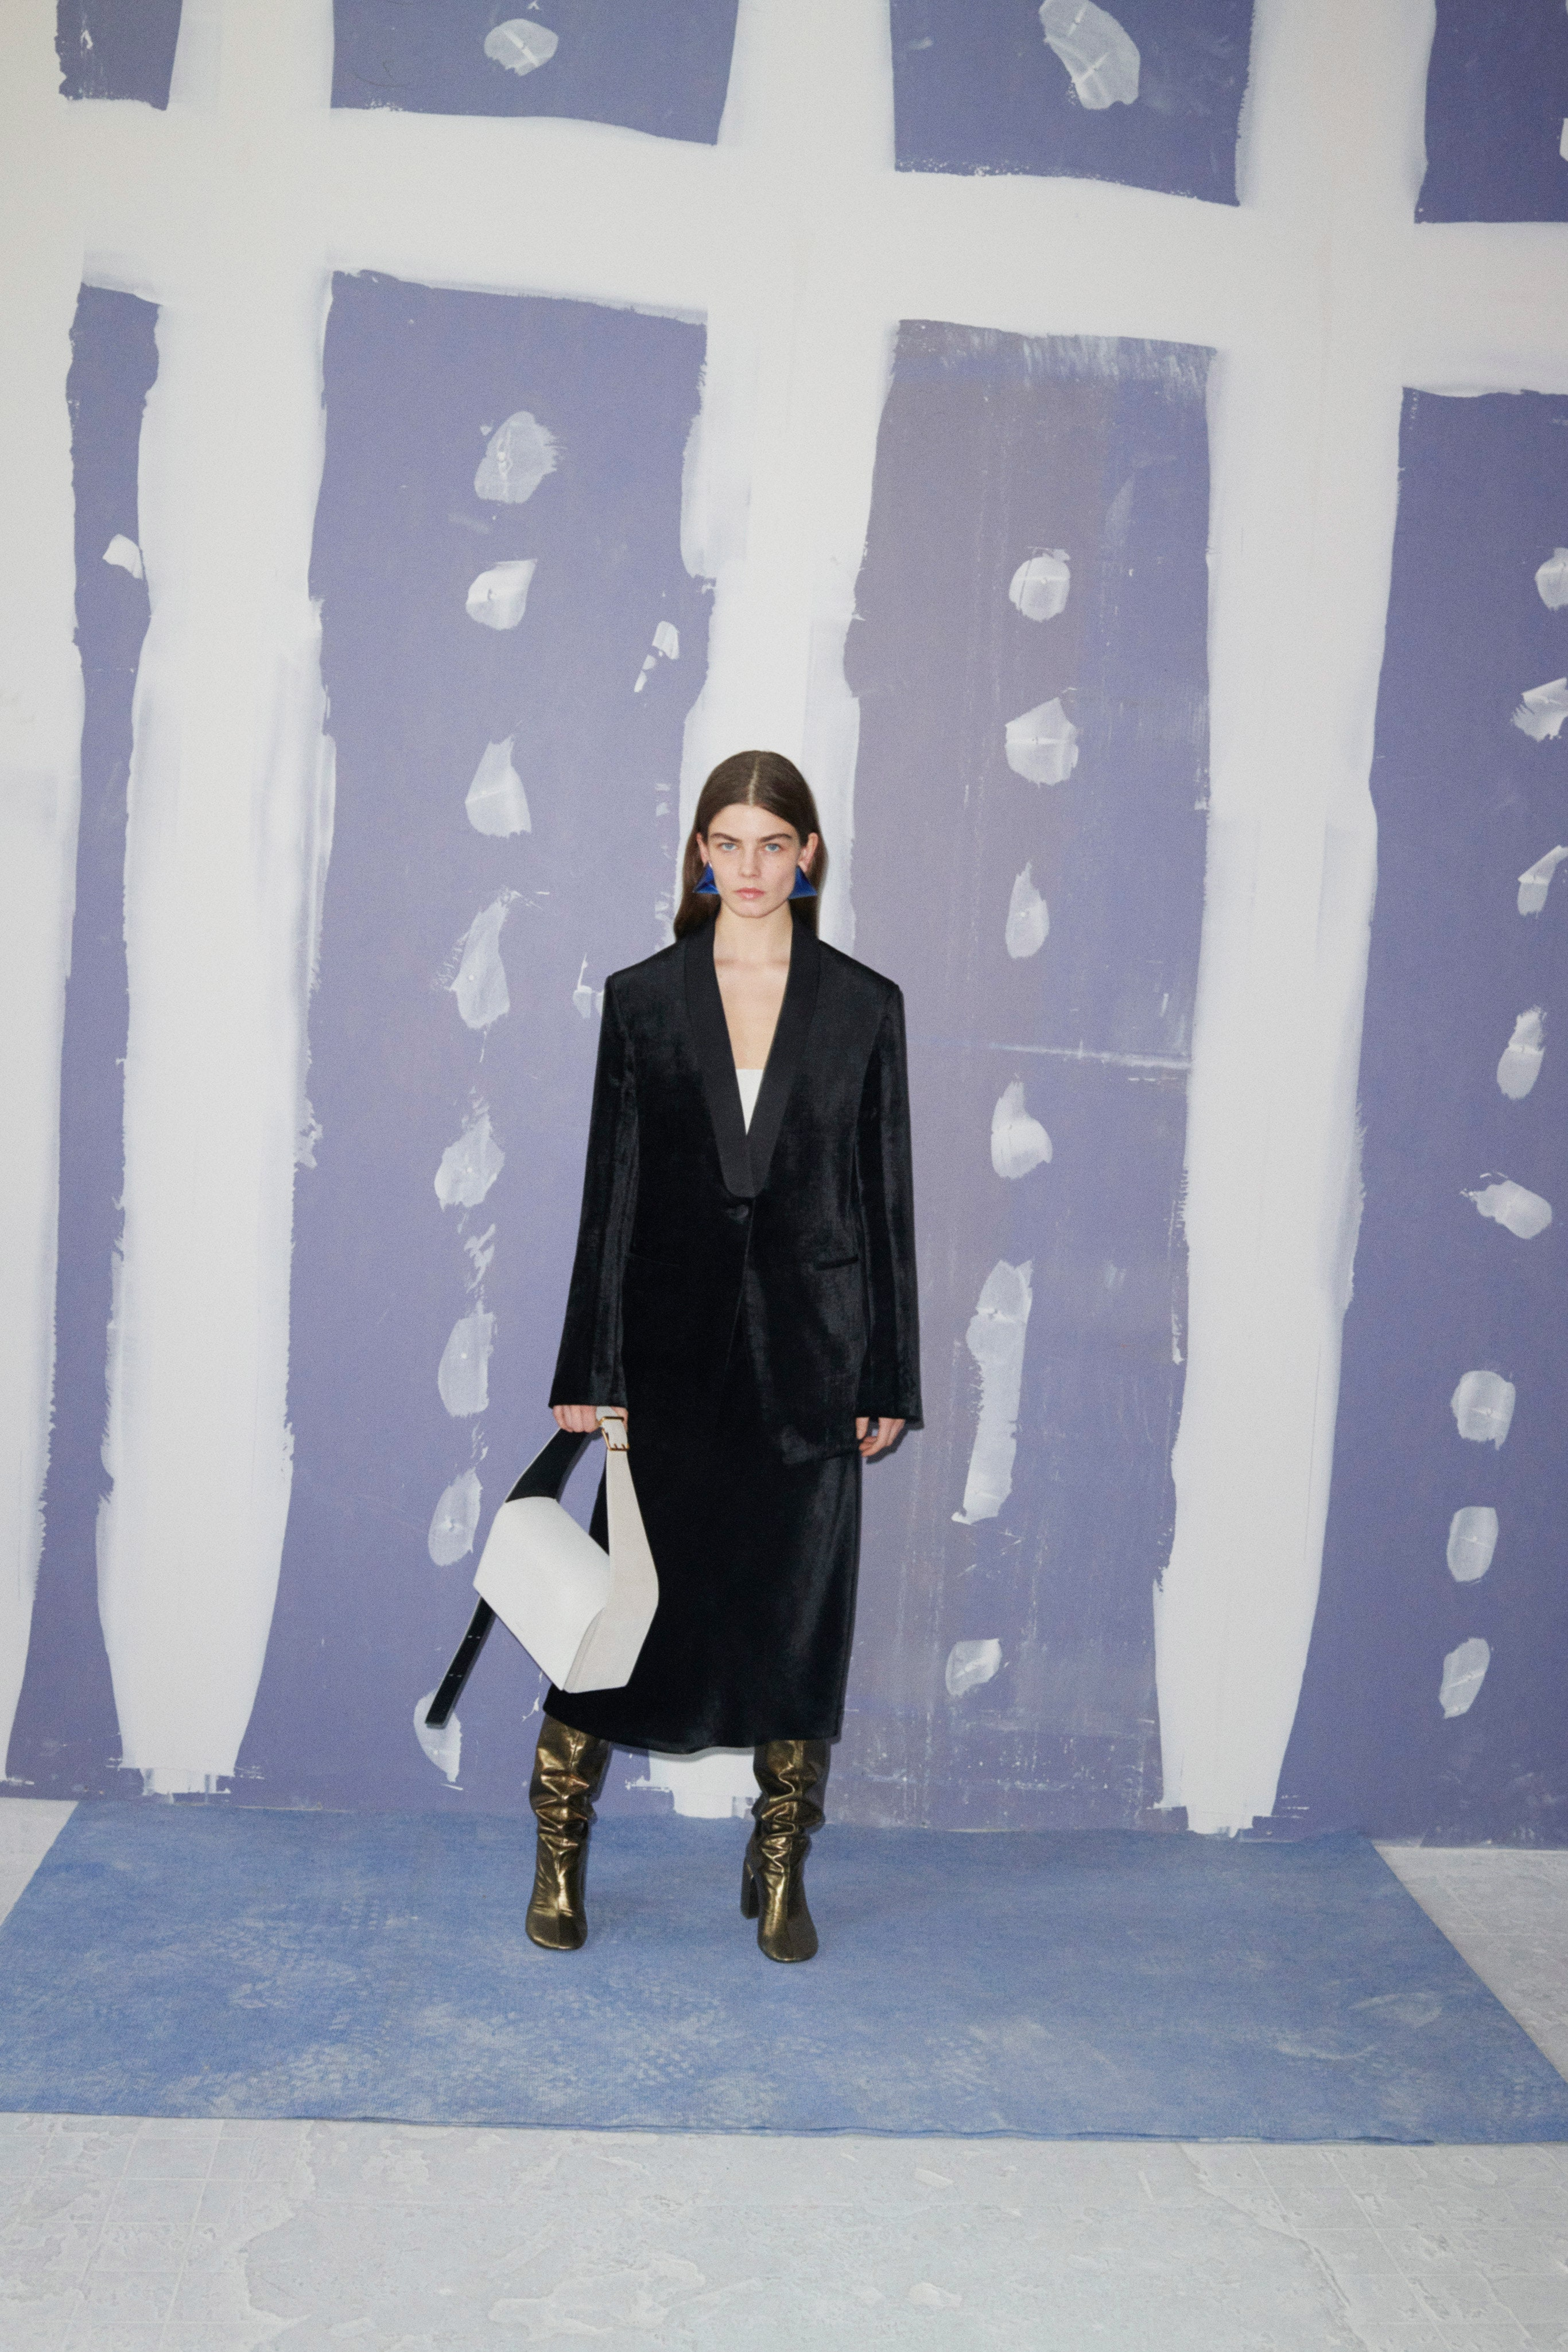 For walks in the fresh air: A seasonal collection of Jil Sander arrived at Asthik (photo 19)